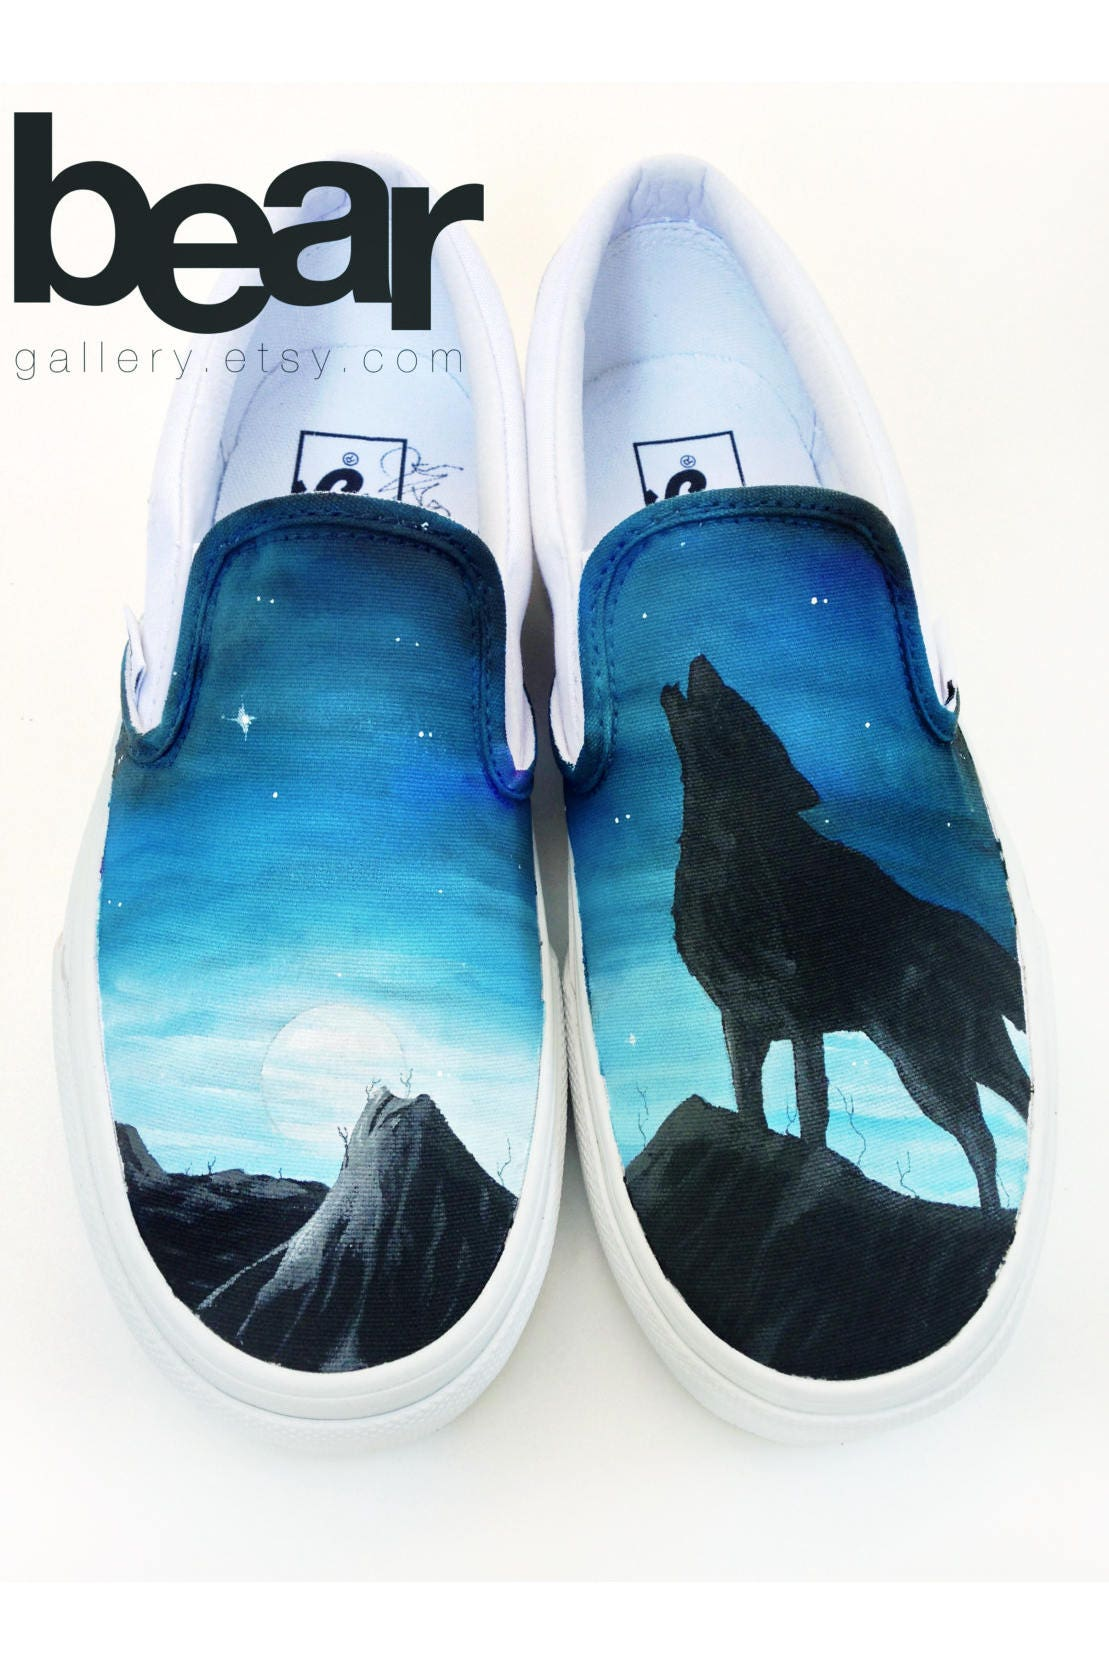 best website 36e03 58578 Custom Painted Wolf Vans Shoes Hand Painted Wolf Moon and   Etsy